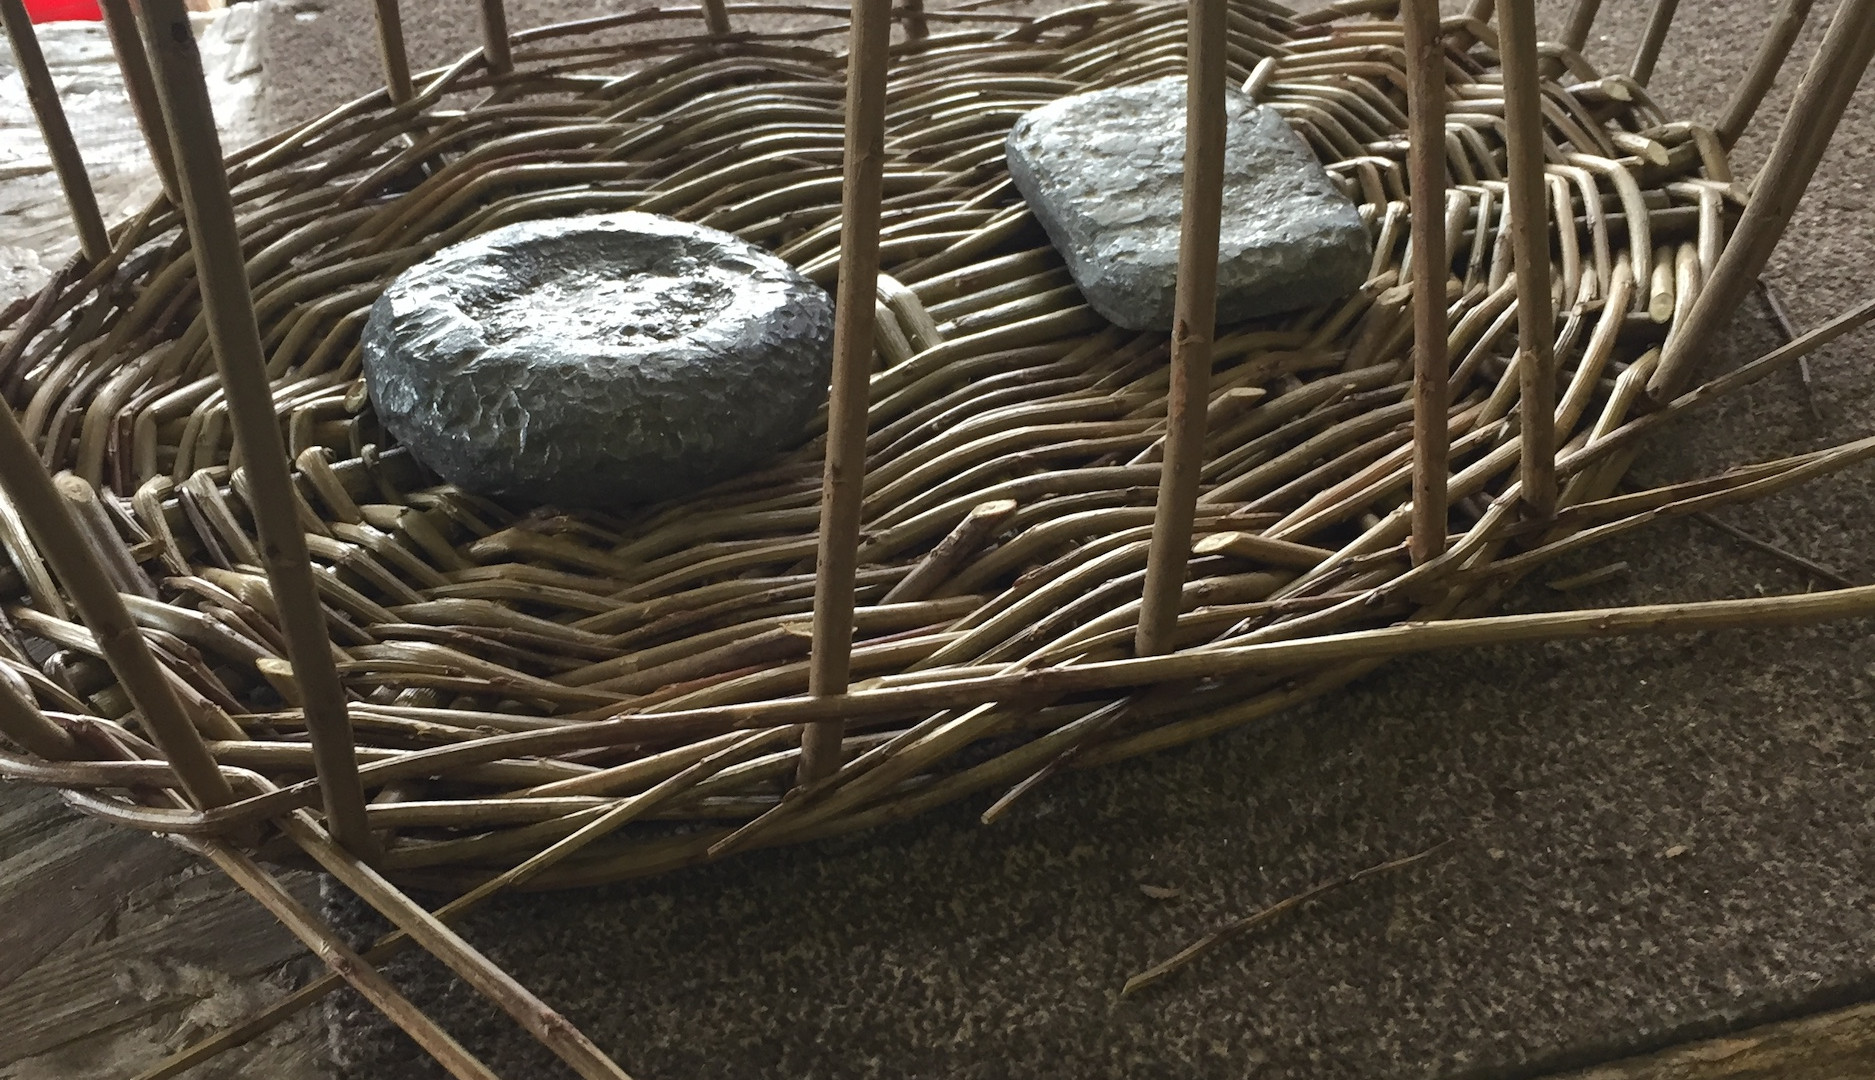 Upsett spokes and weight basket so it stays in place